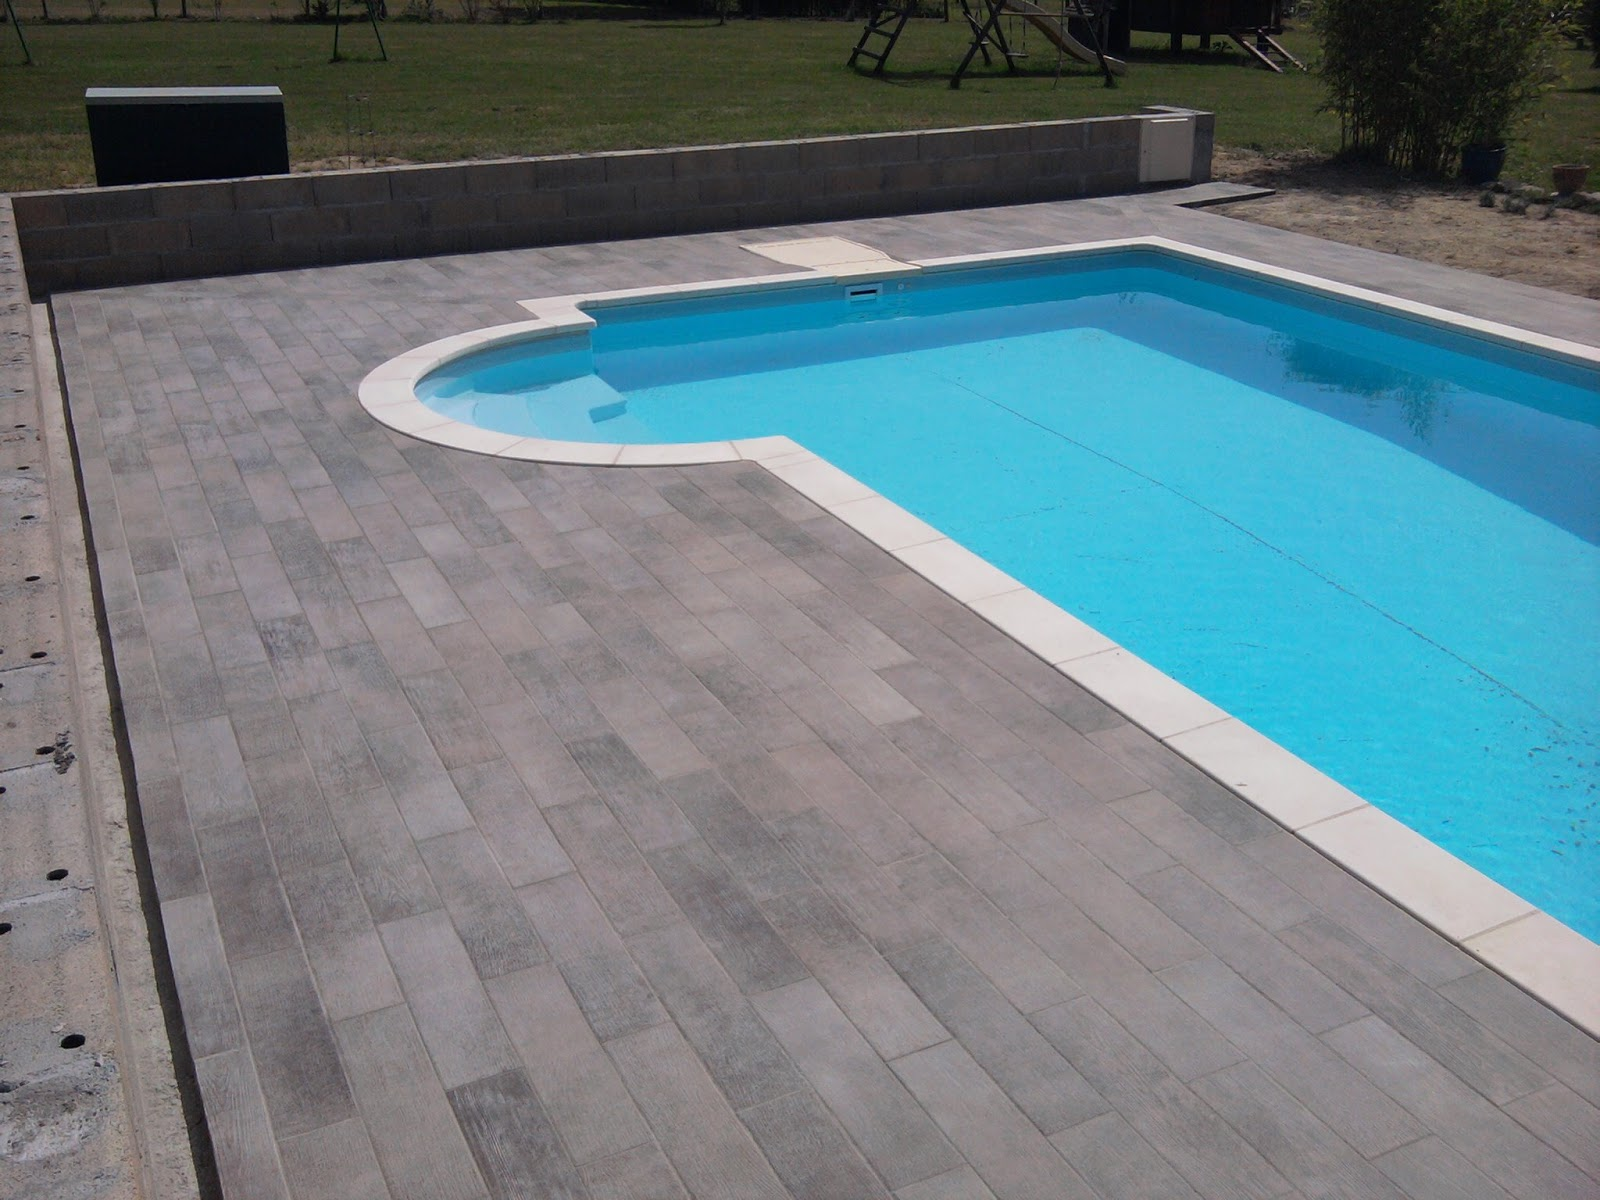 Bouillon gilles juin 2011 for Piscine en carrelage